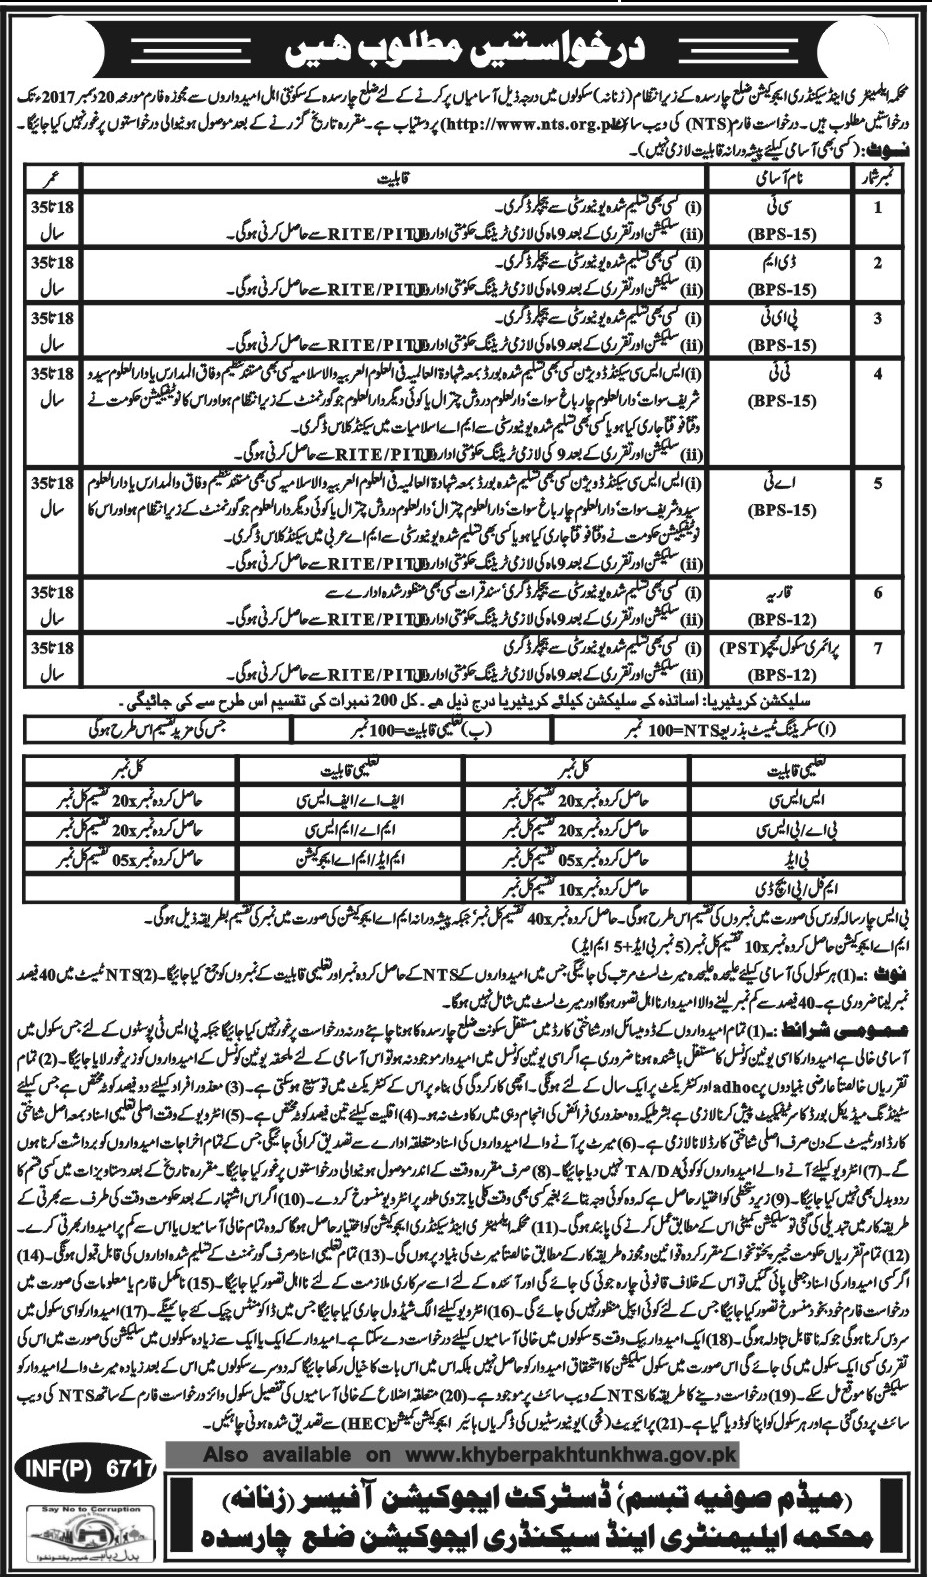 KPK District Cadre SST Elementary and Secondary Education Jobs NTS Roll Number Slips 2021